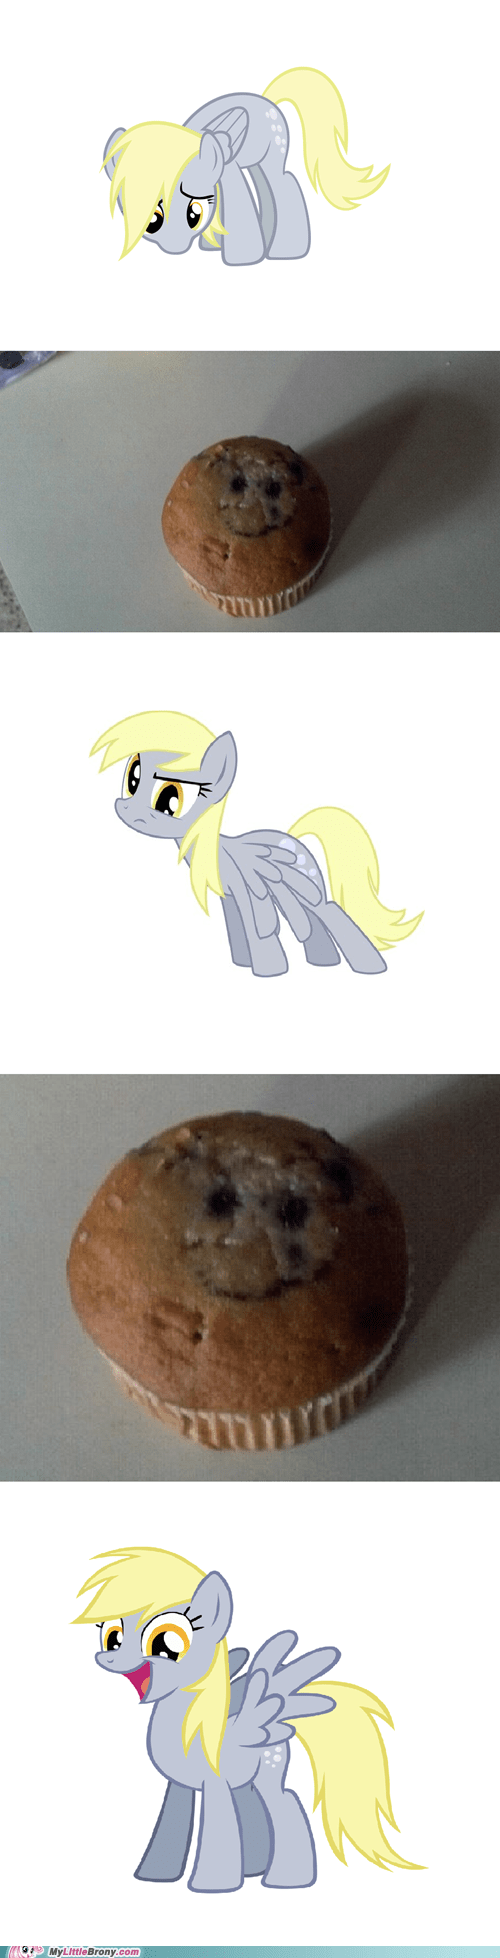 So I made some muffins...